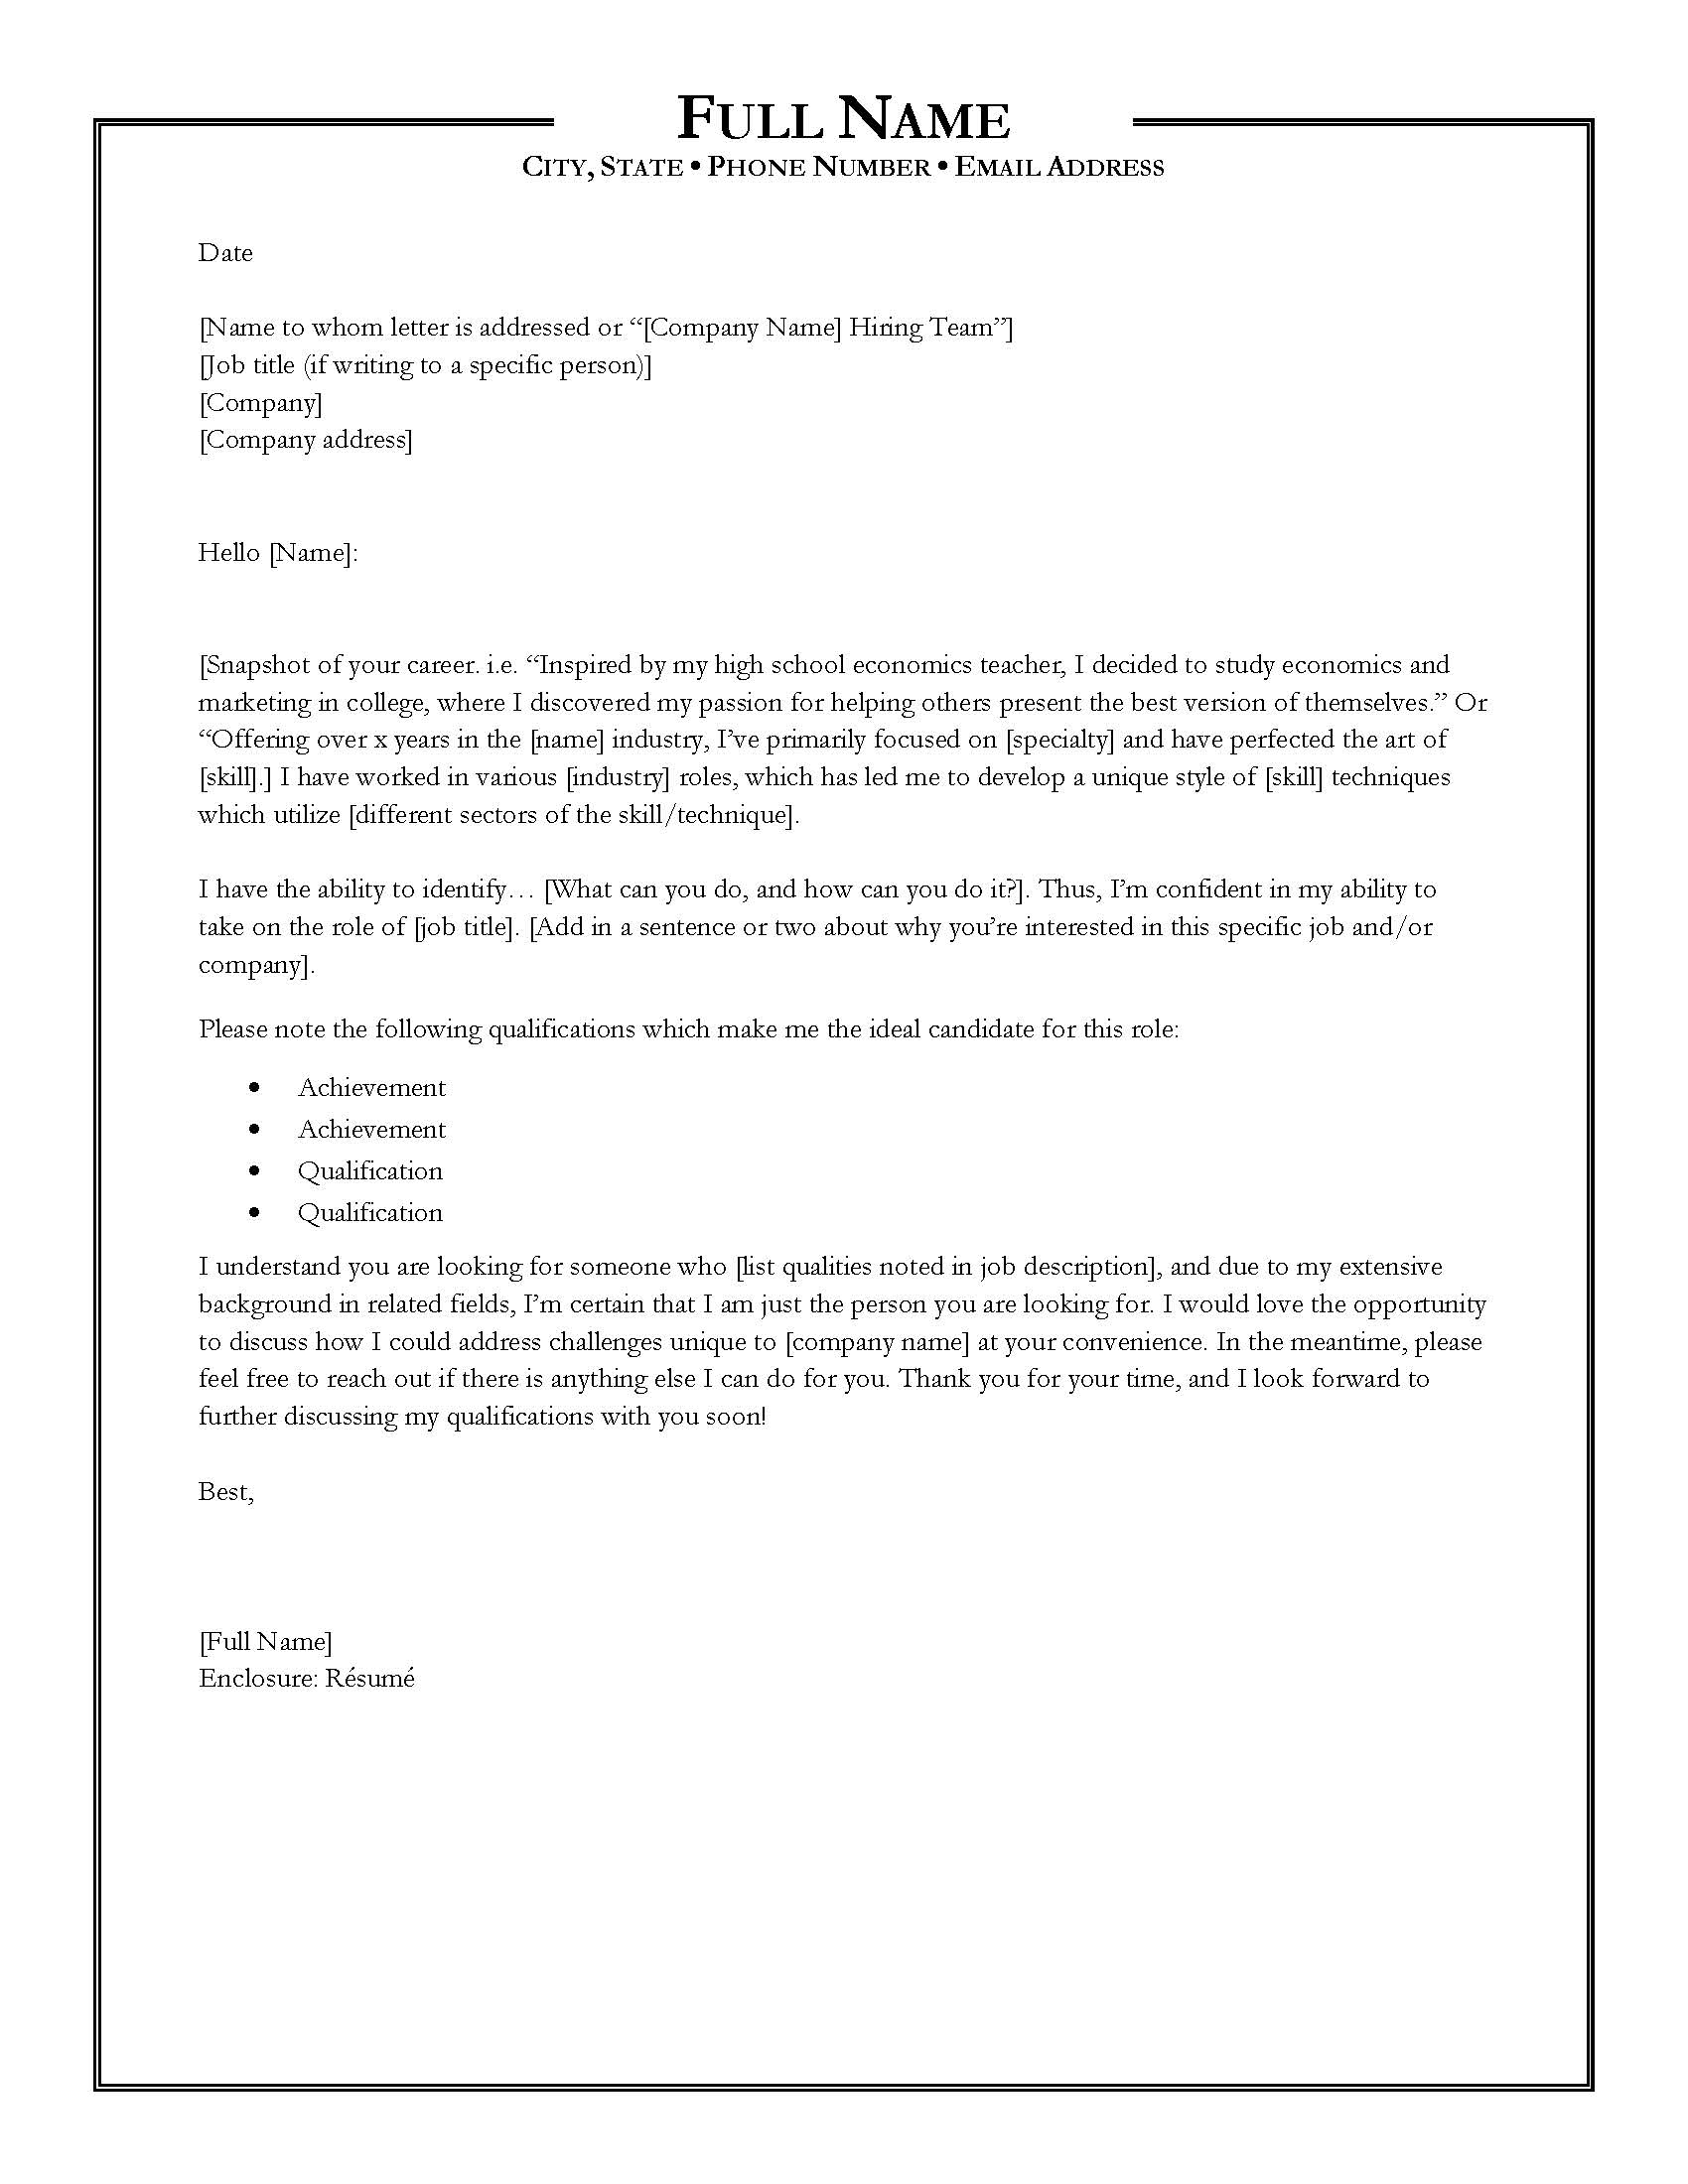 Writing The Perfect Cover Letter  How To Write A Killer Cover Letter